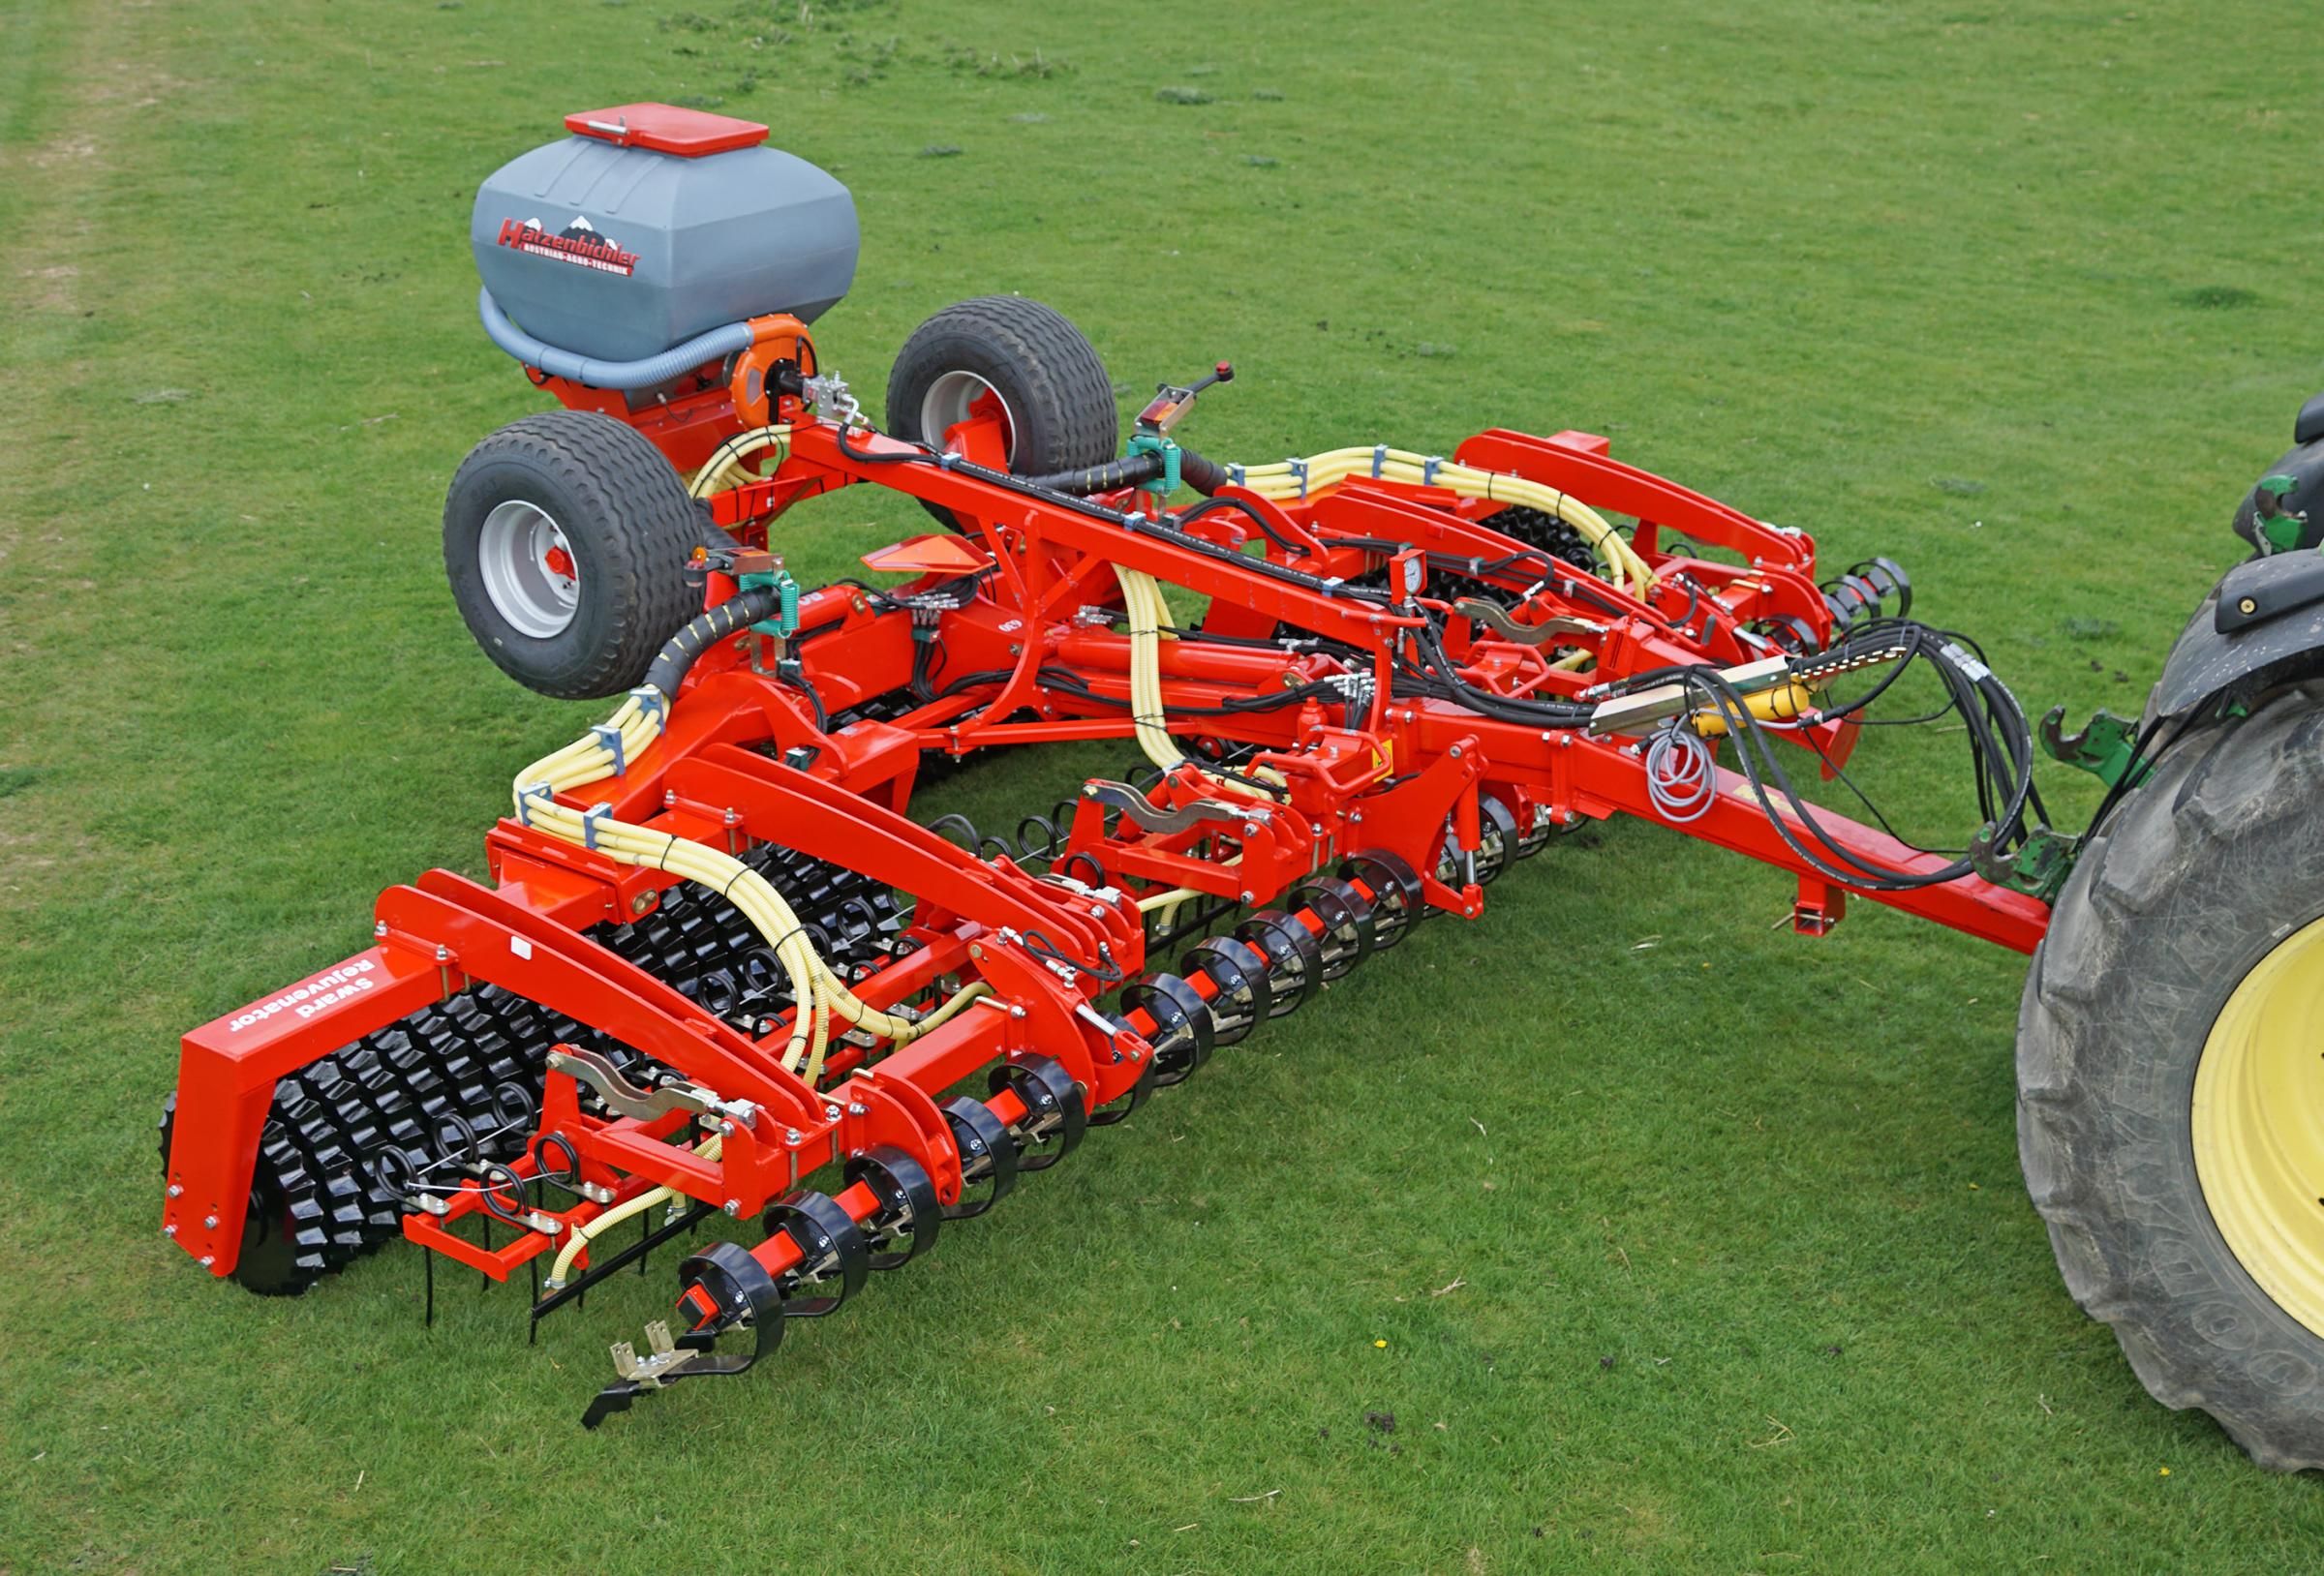 BIG WORKER Opico's 6.3m Sward Rejuvenator